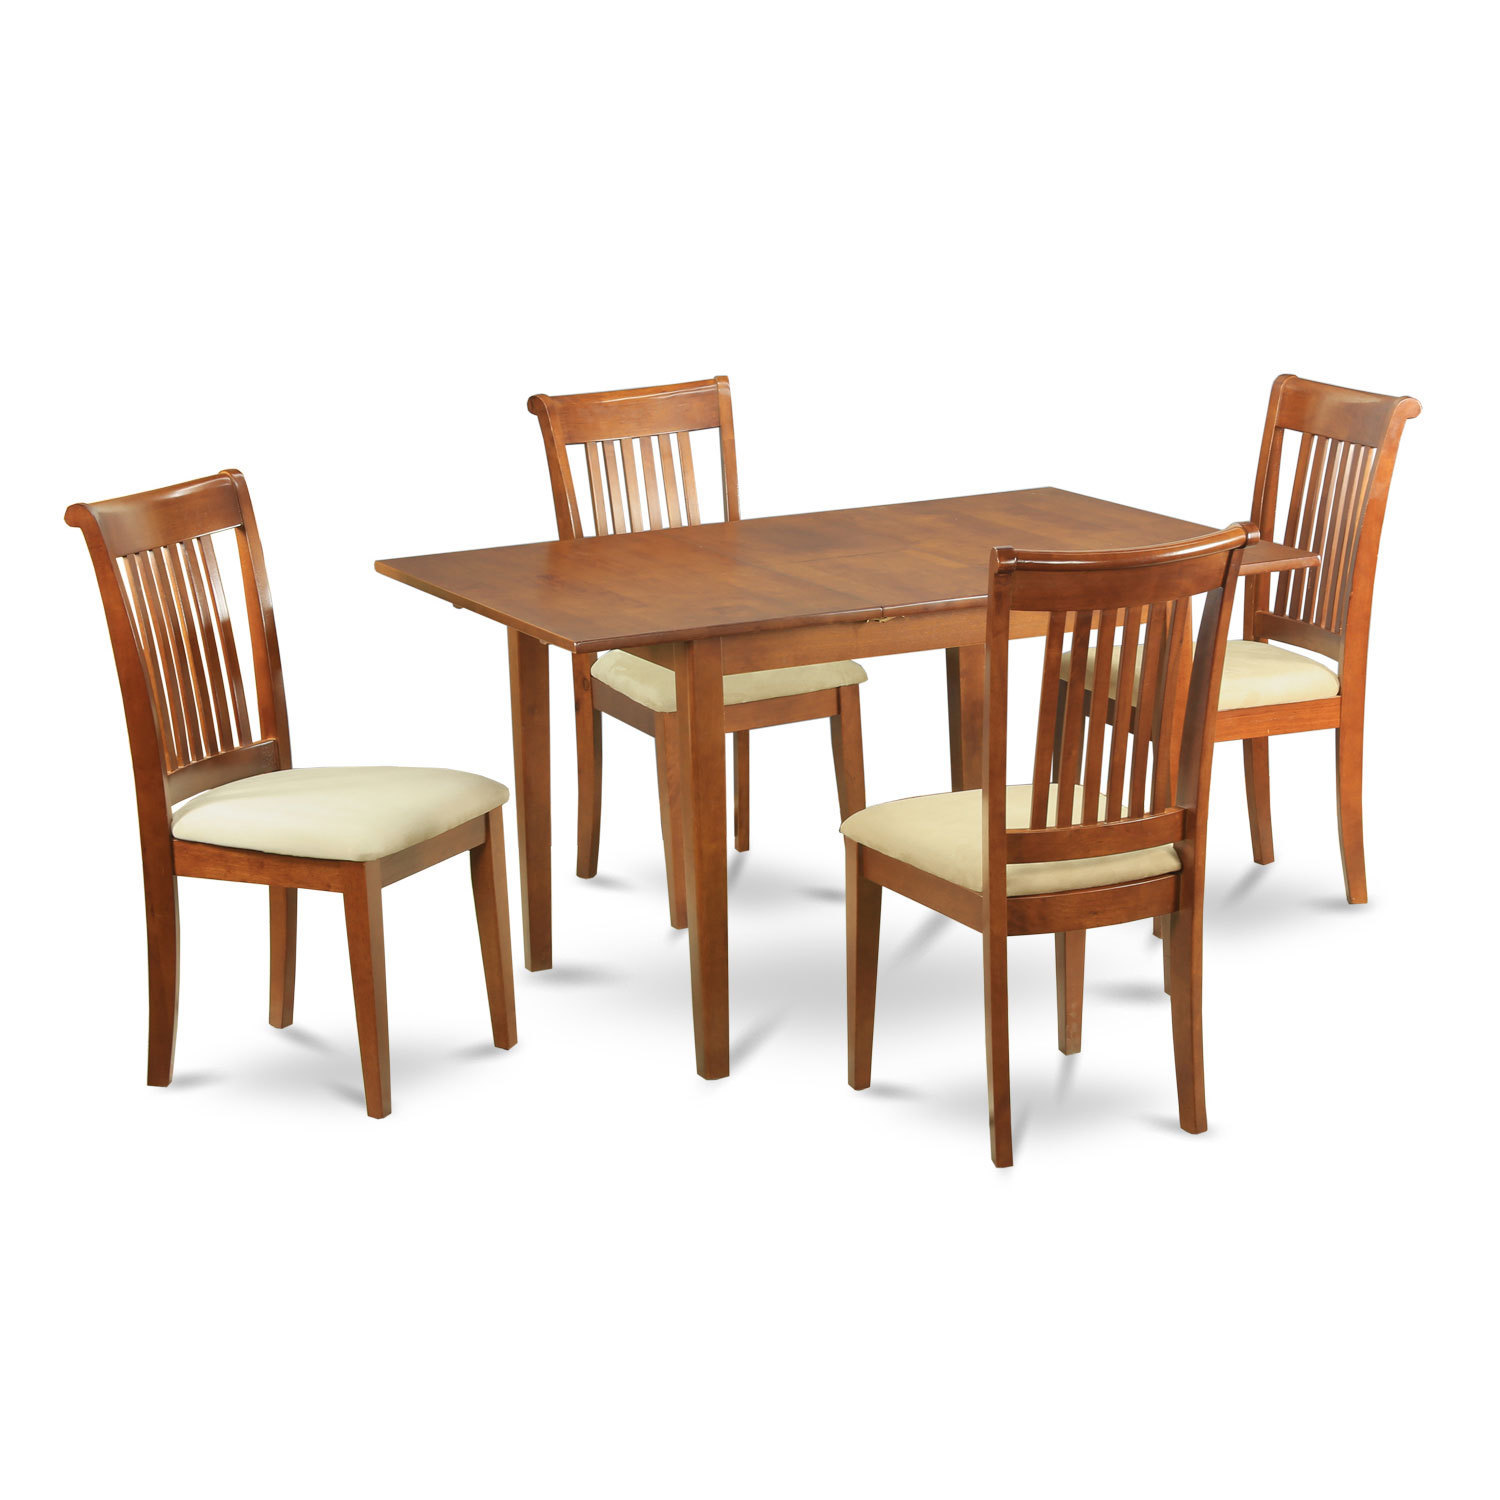 Small dinette set design homesfeed for Small dining room furniture